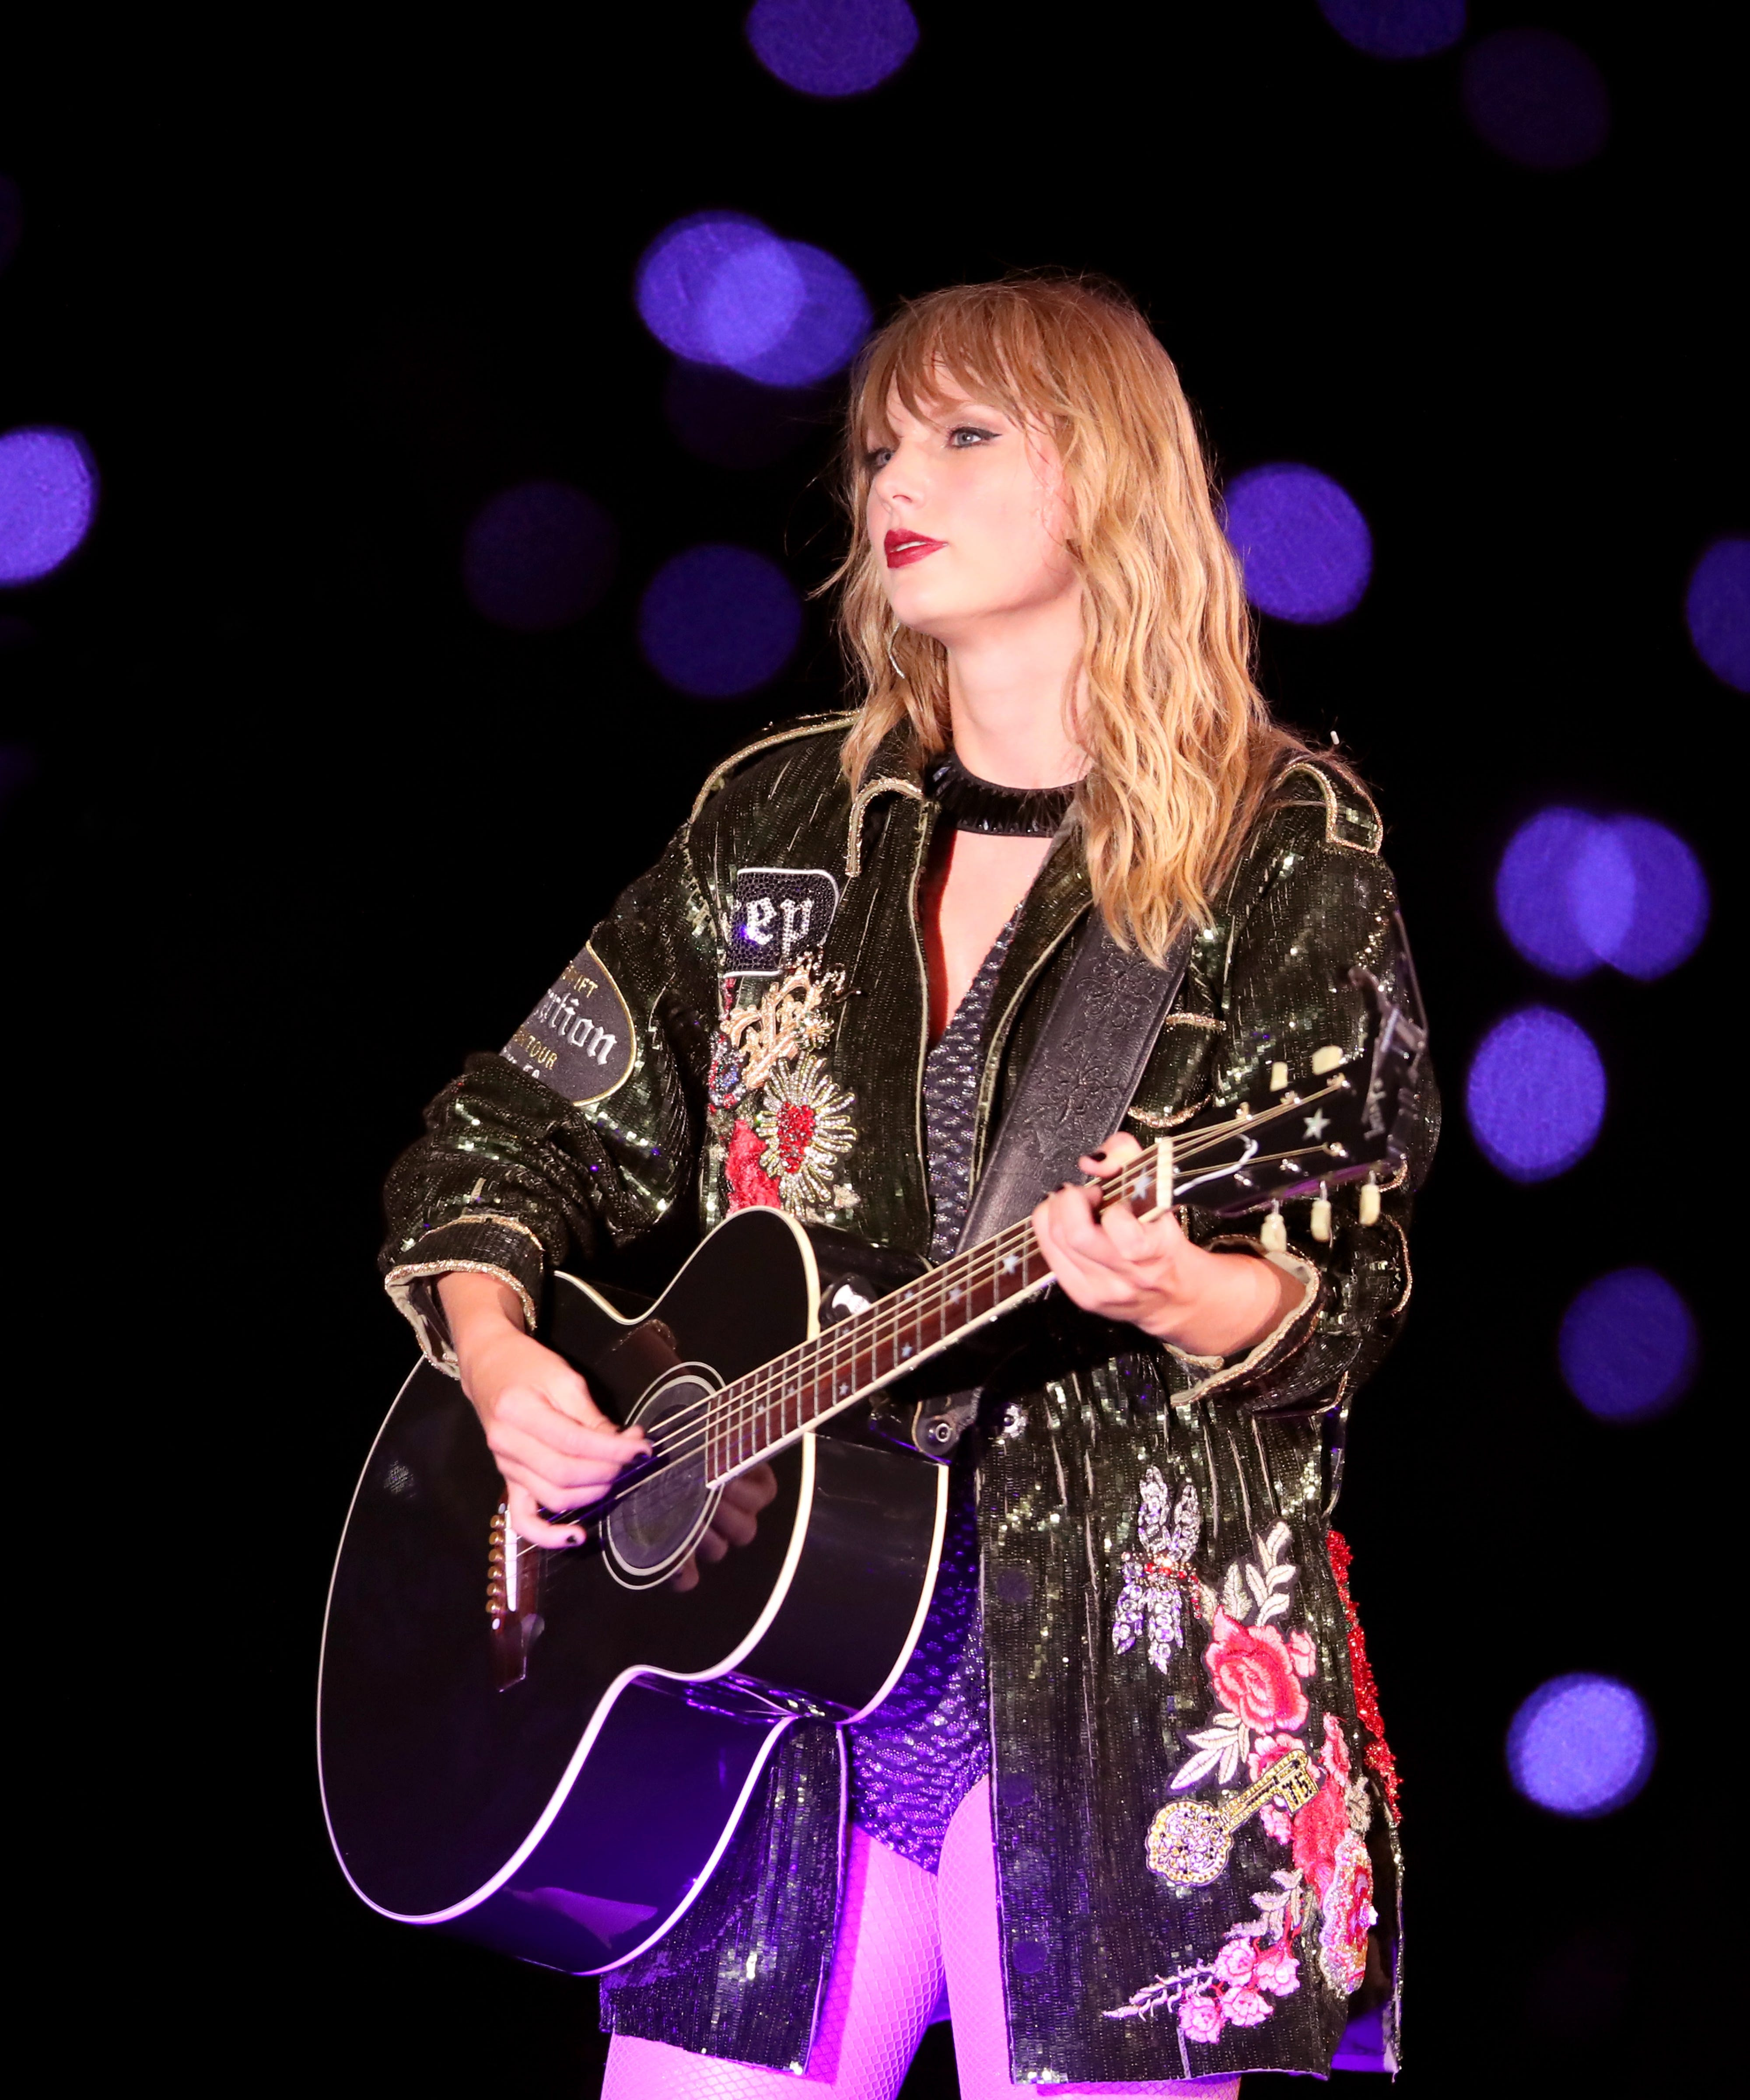 What Taylor Swift Revealed In Reputation Tour Seattle